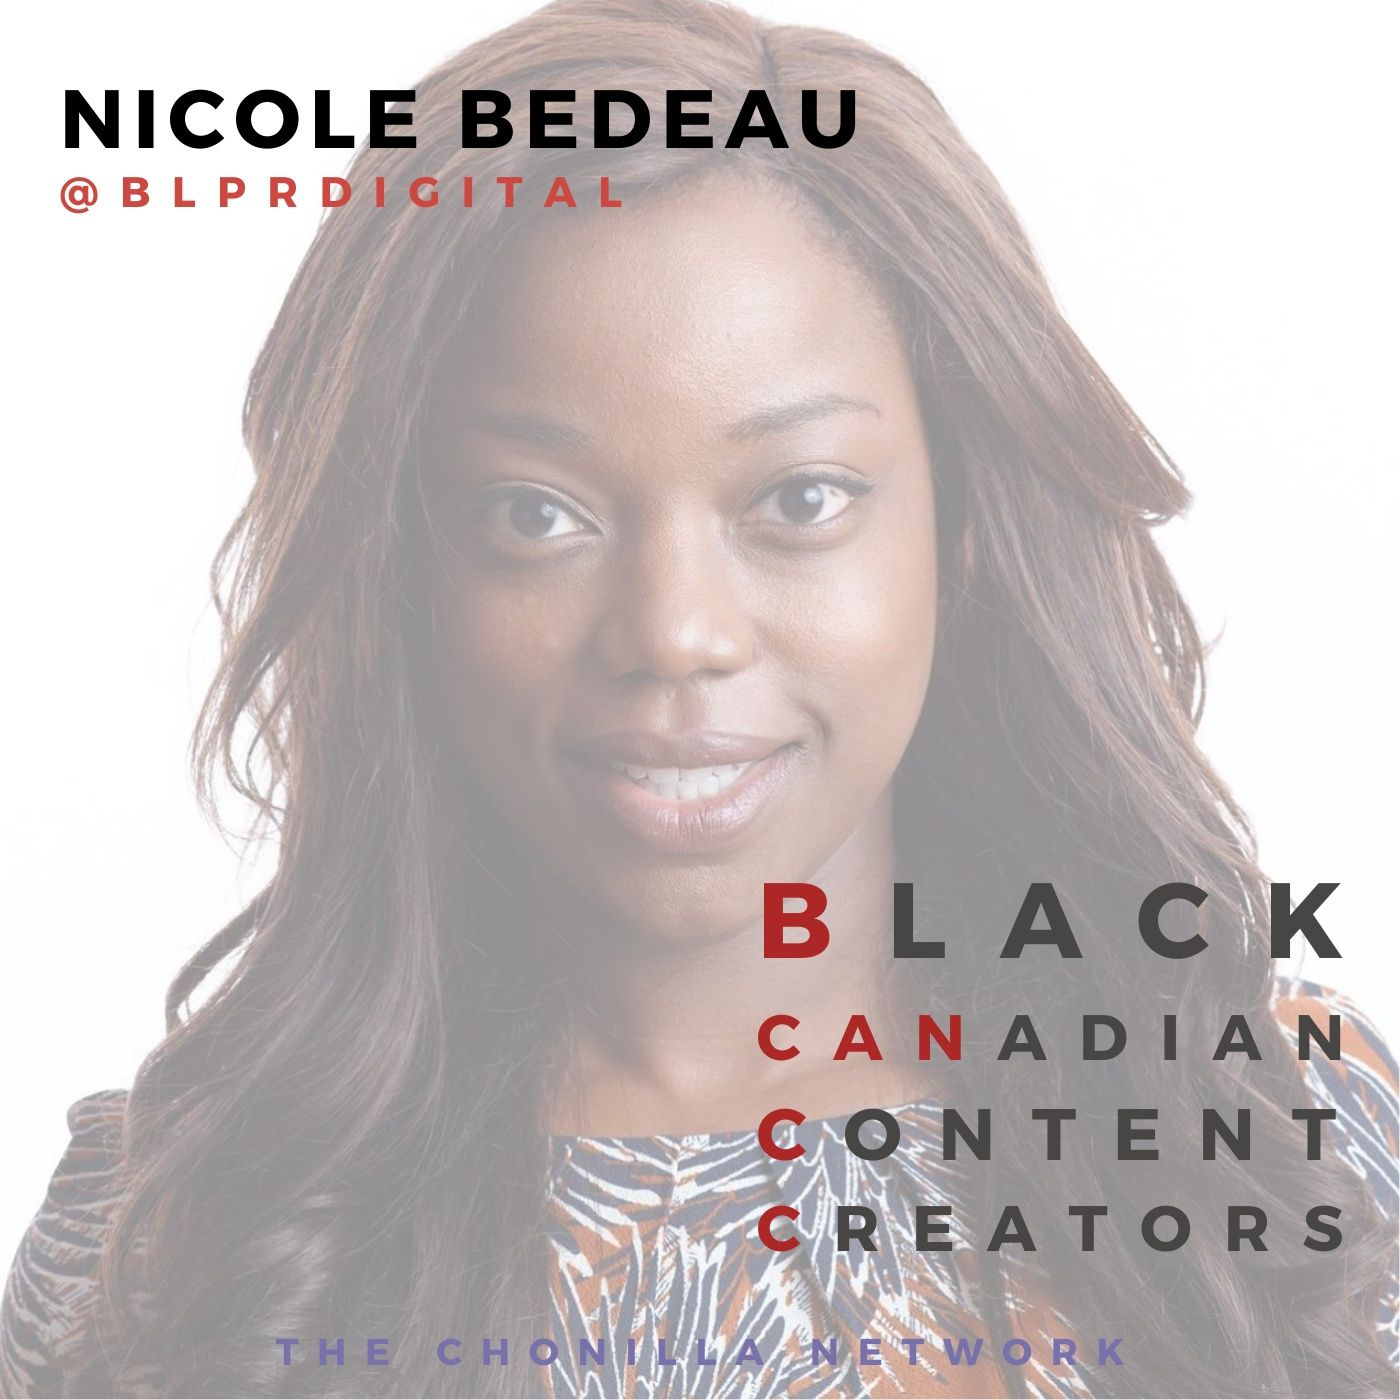 You Have Nothing to Lose by Trying w/ Nicole Bedeau